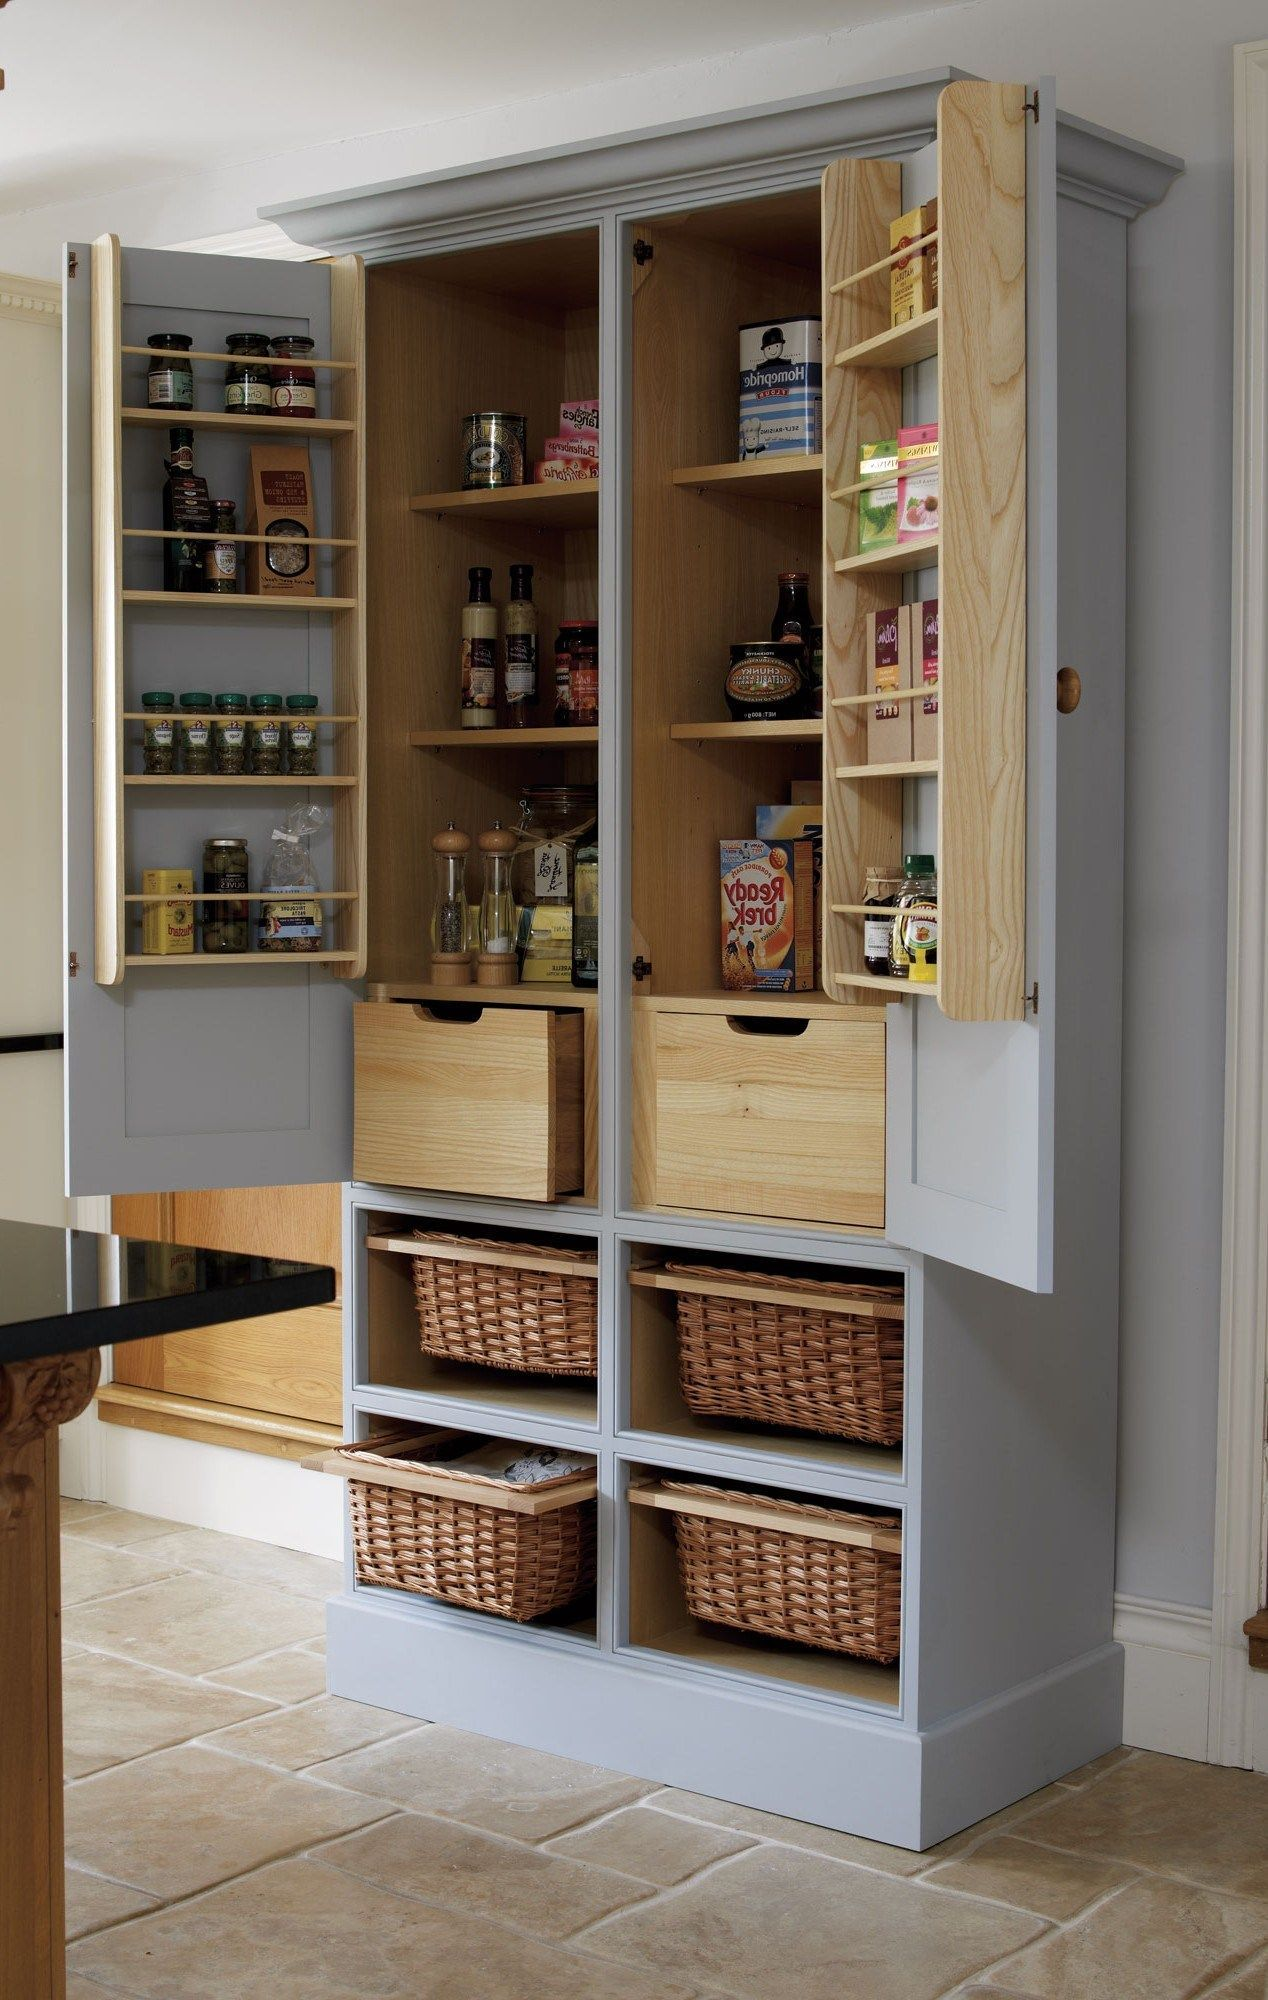 Kitchen Storage Cabinets Spin And Pull Out Storage Cabinets In 2020 Freestanding Kitchen Free Standing Kitchen Cabinets Kitchen Pantry Cabinet Freestanding